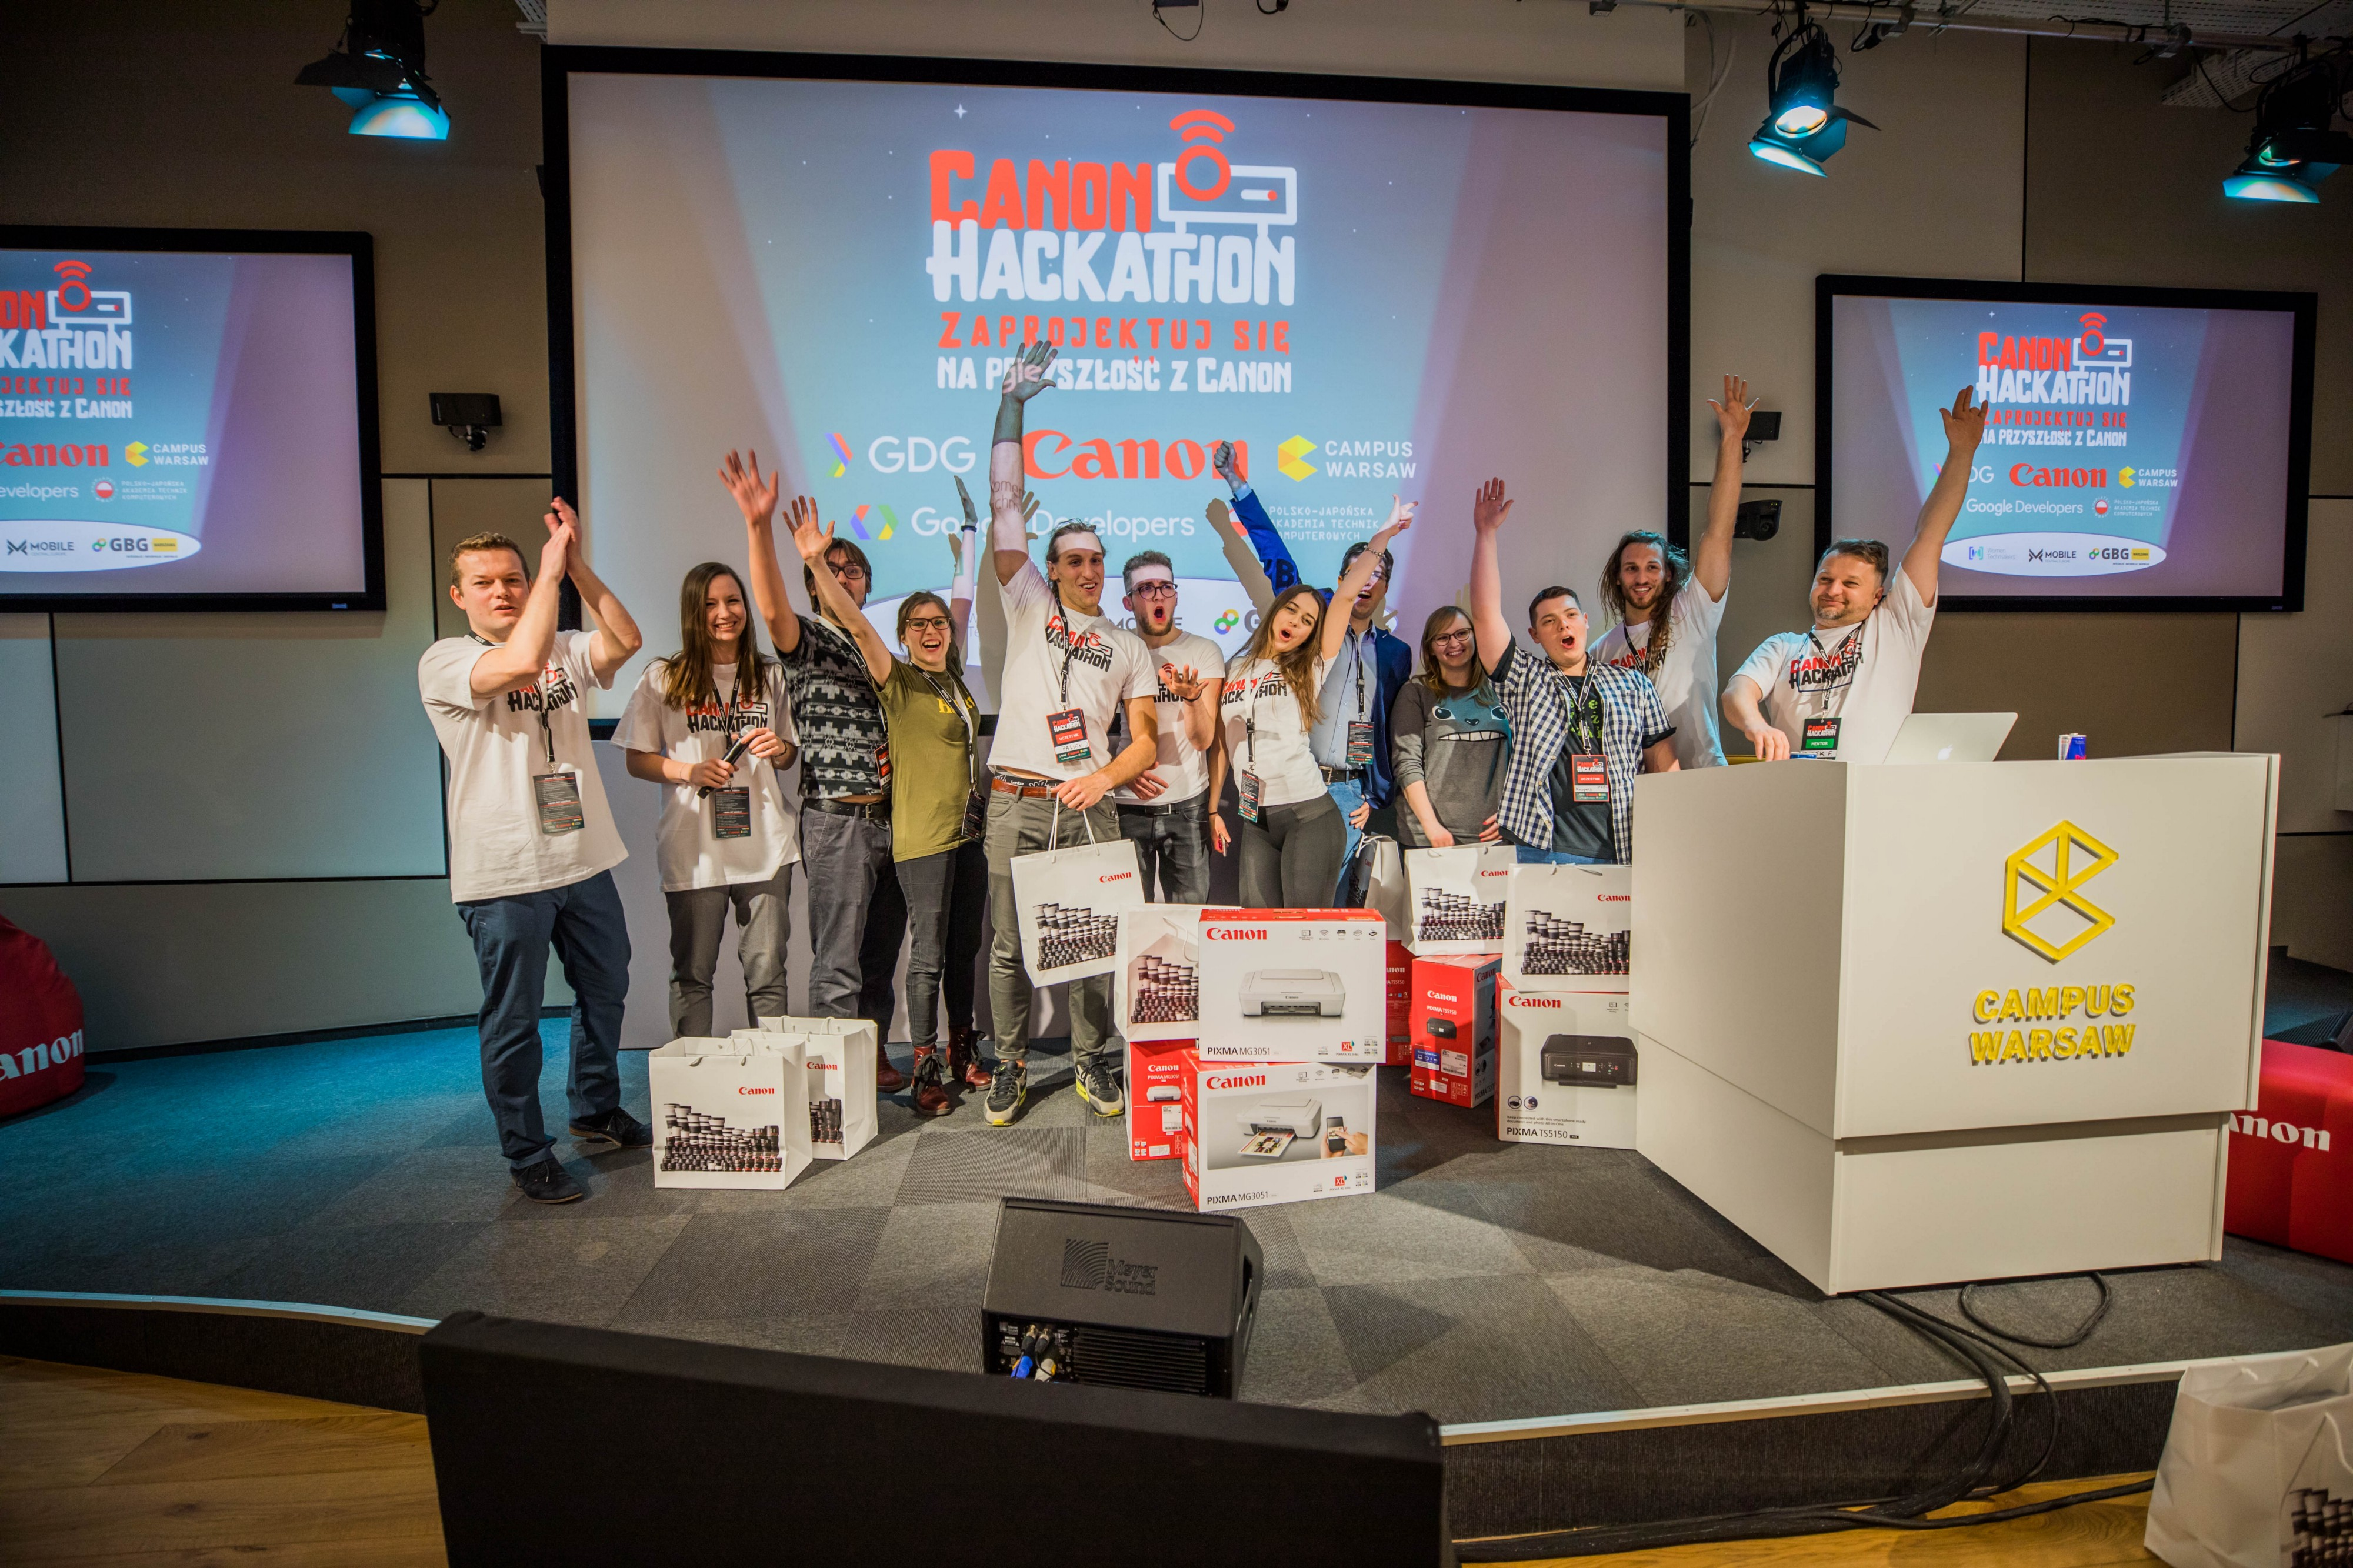 CanonHackathon: How to hack projectors and give them a new